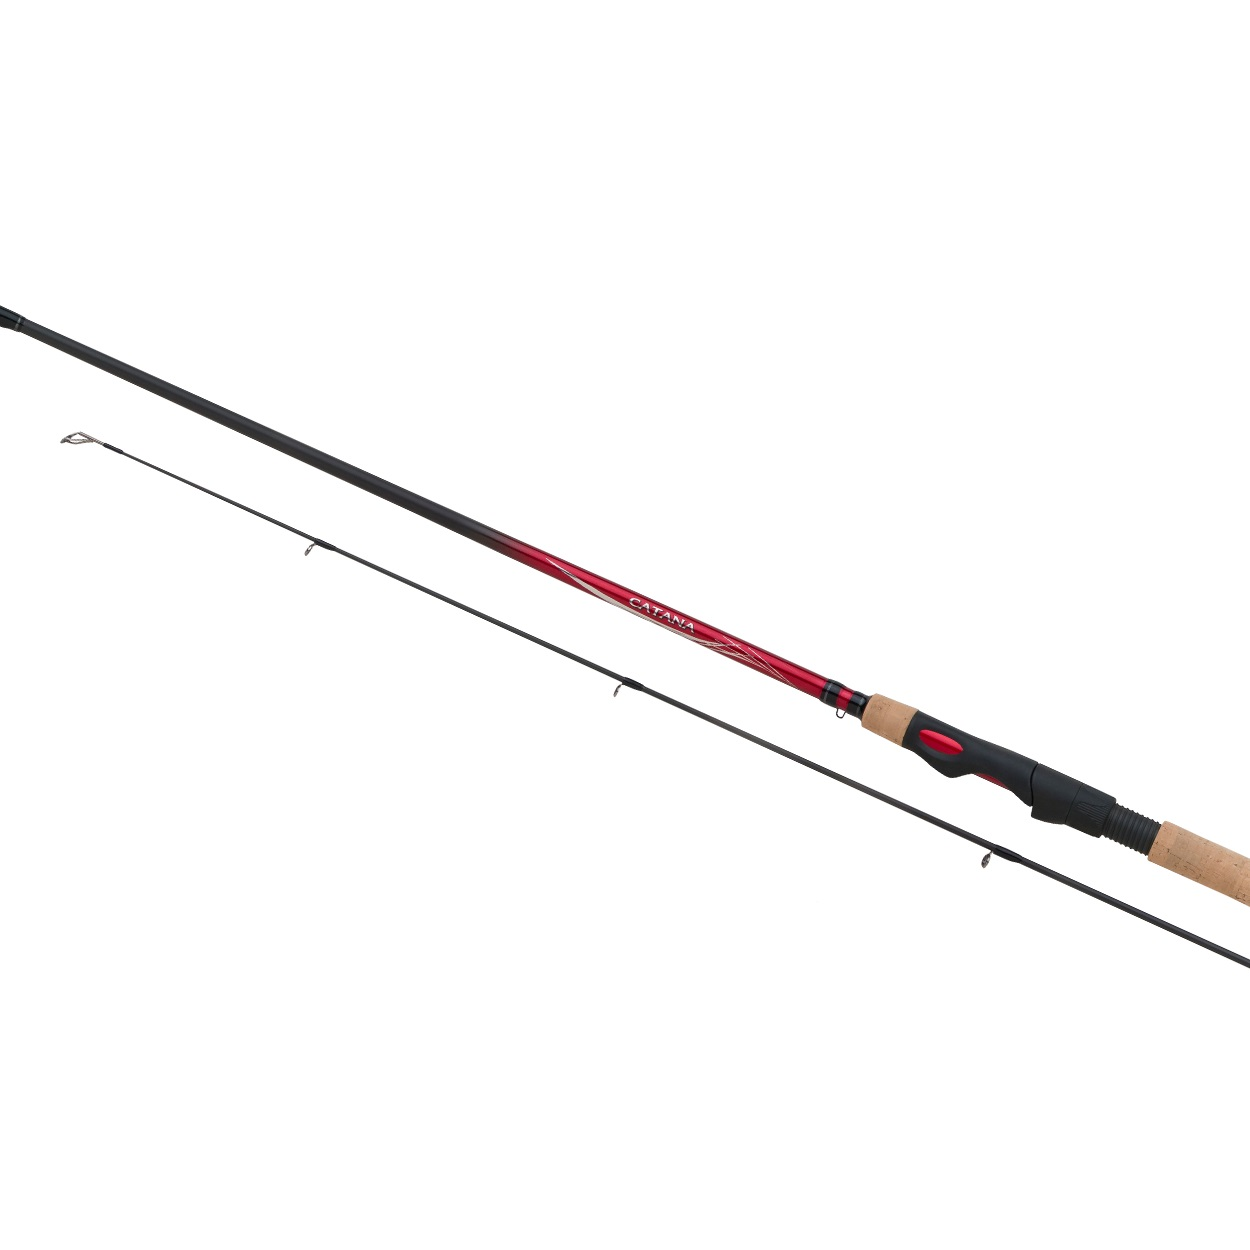 Spinings SHIMANO CATANA EX 180 L